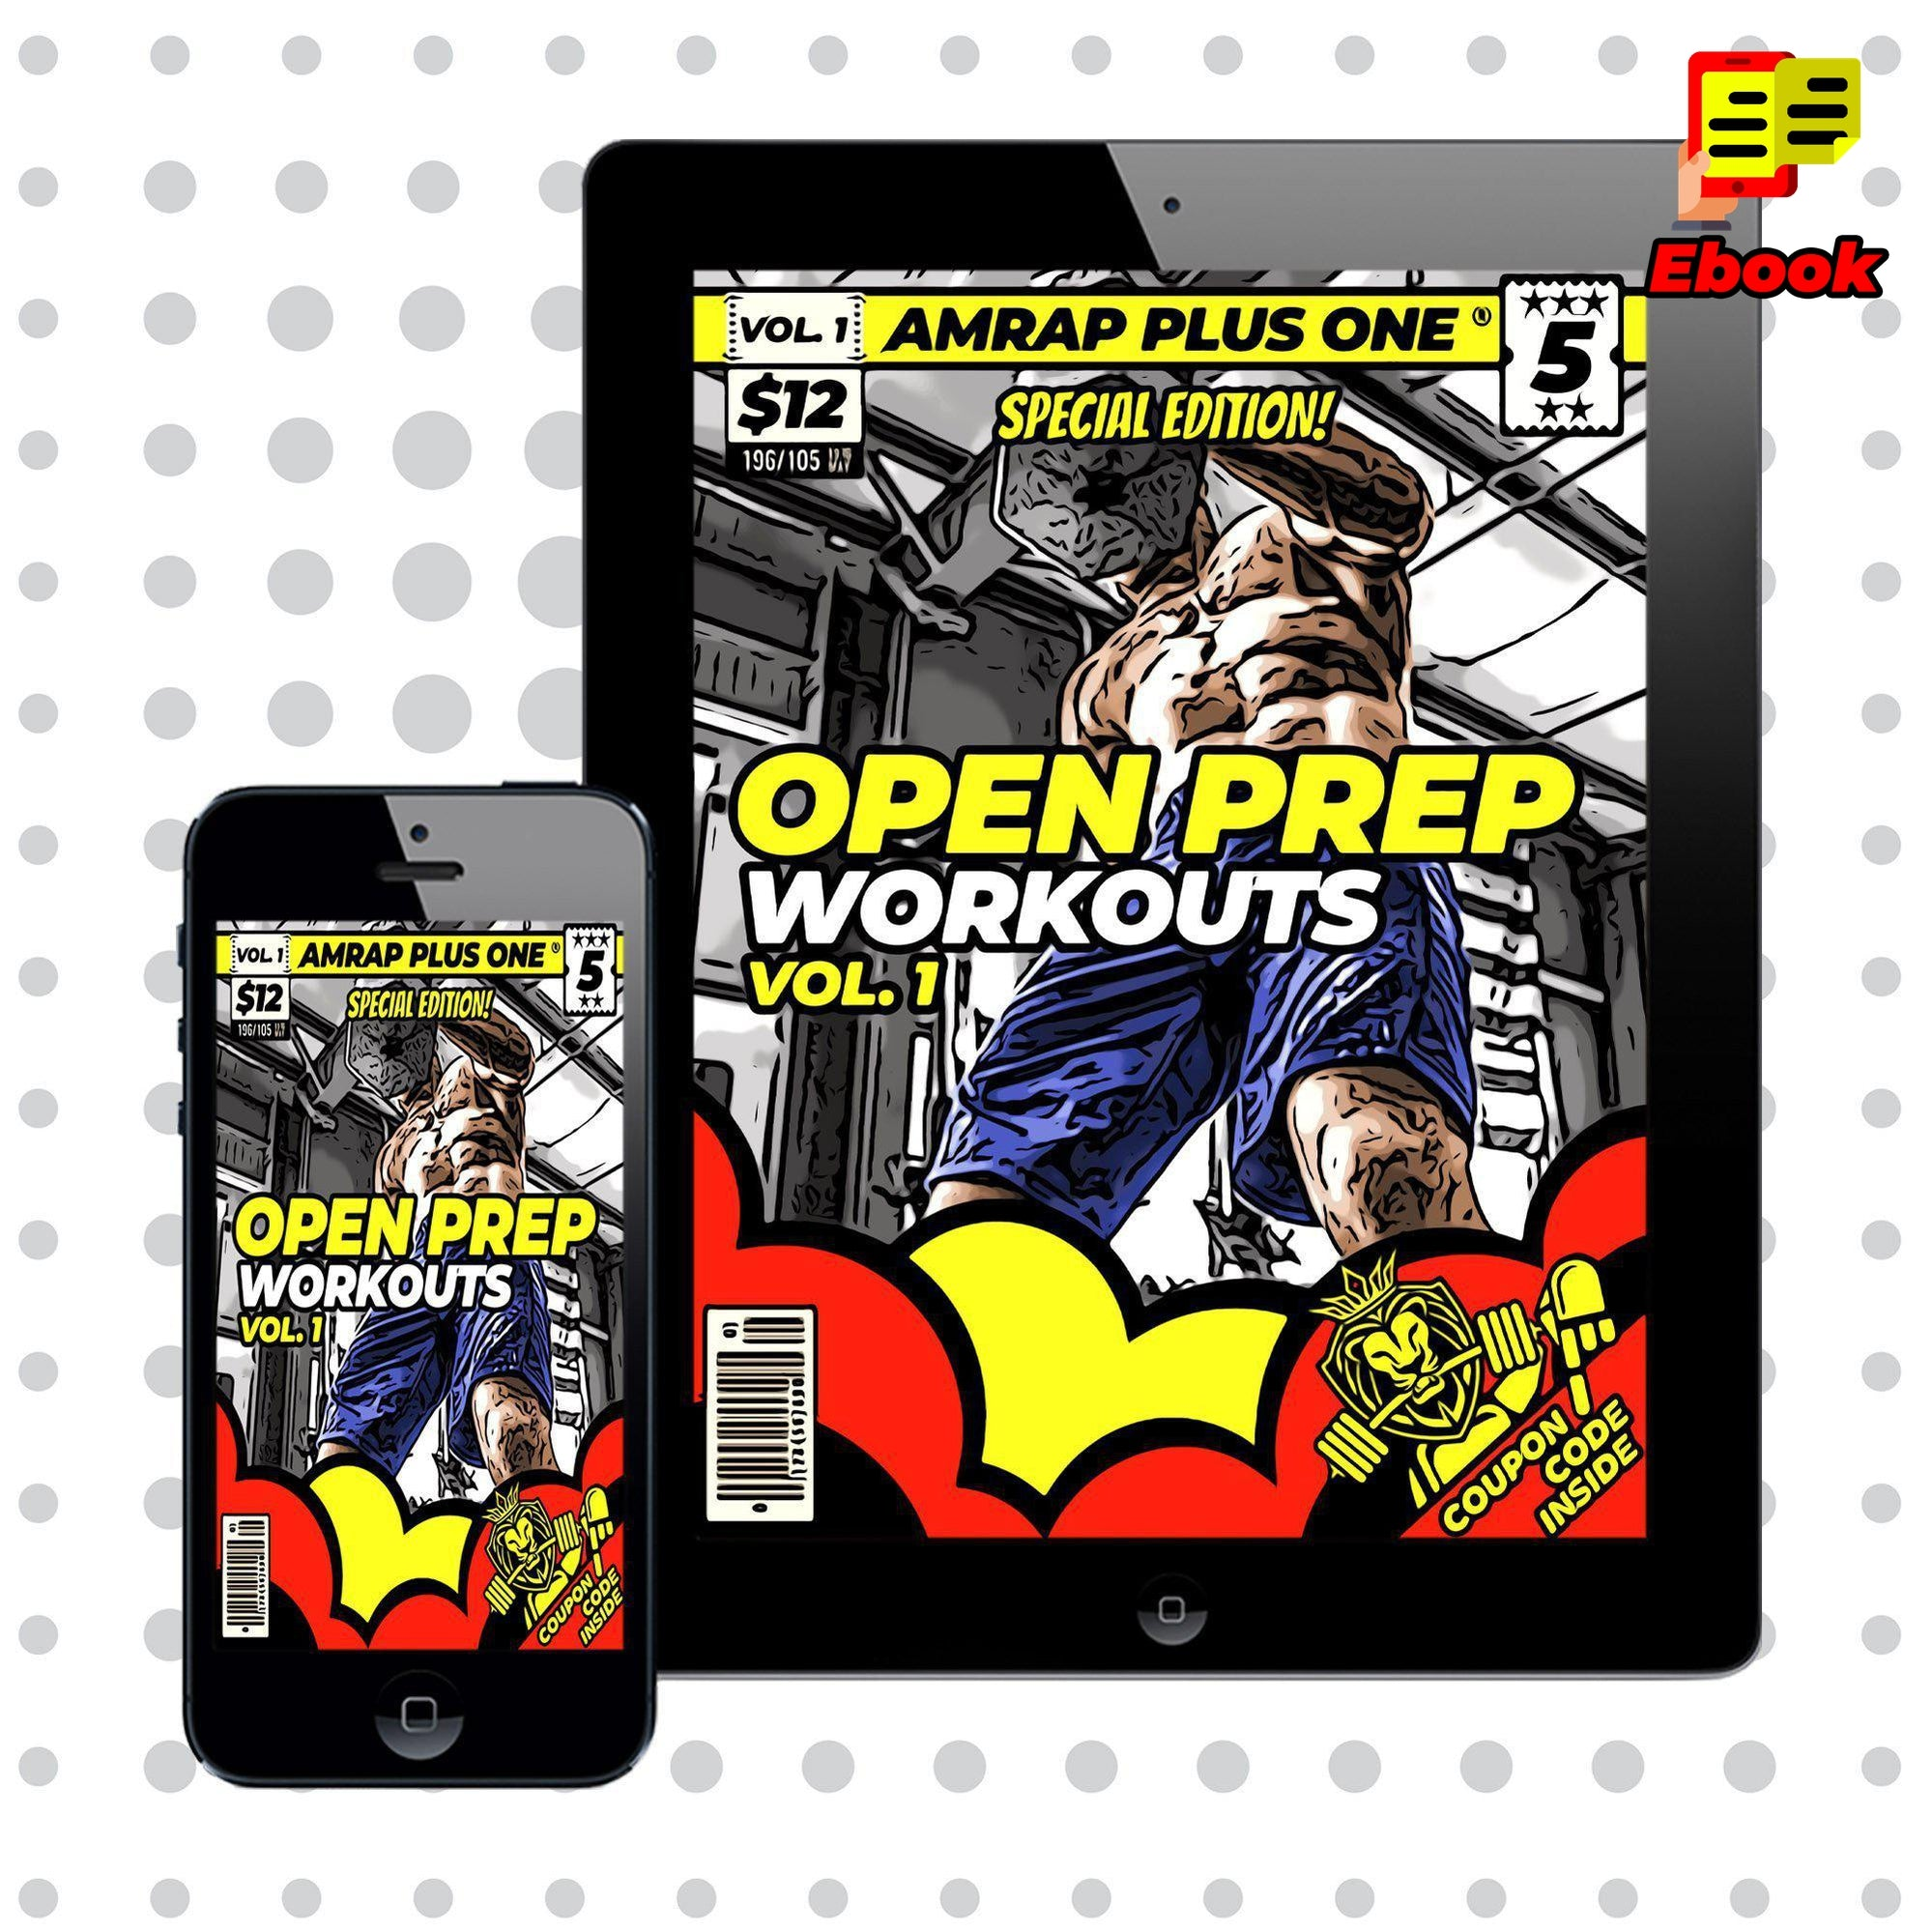 """Open Prep"" Workouts Vol. 1 - AMRAP Plus One"